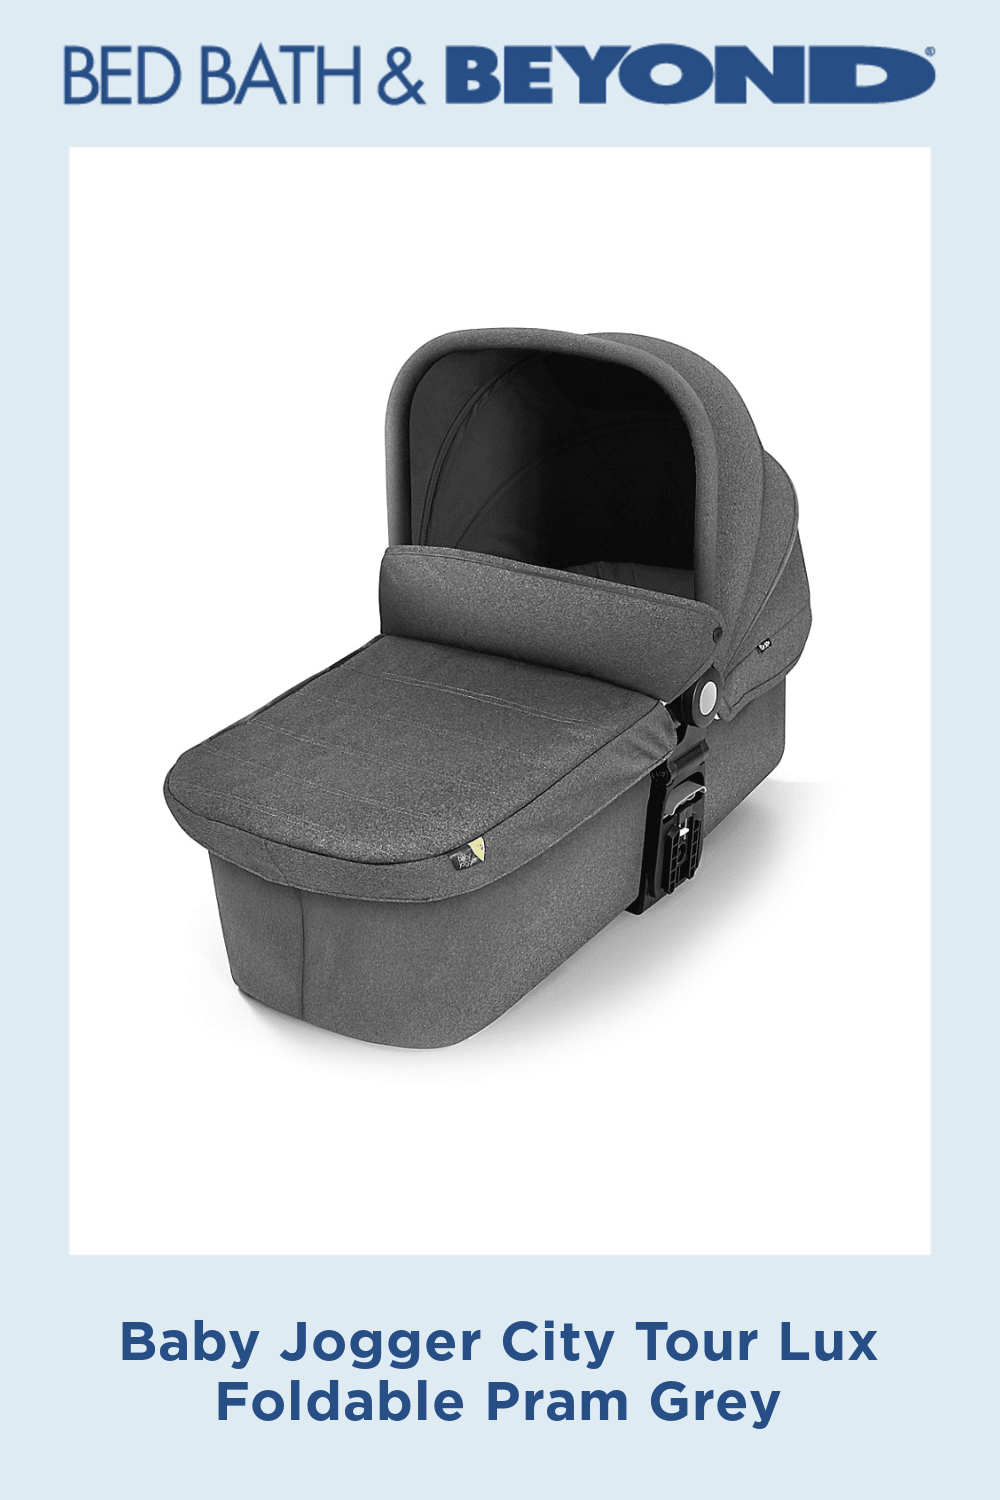 Baby Jogger City Tour Lux Foldable Pram Grey Products